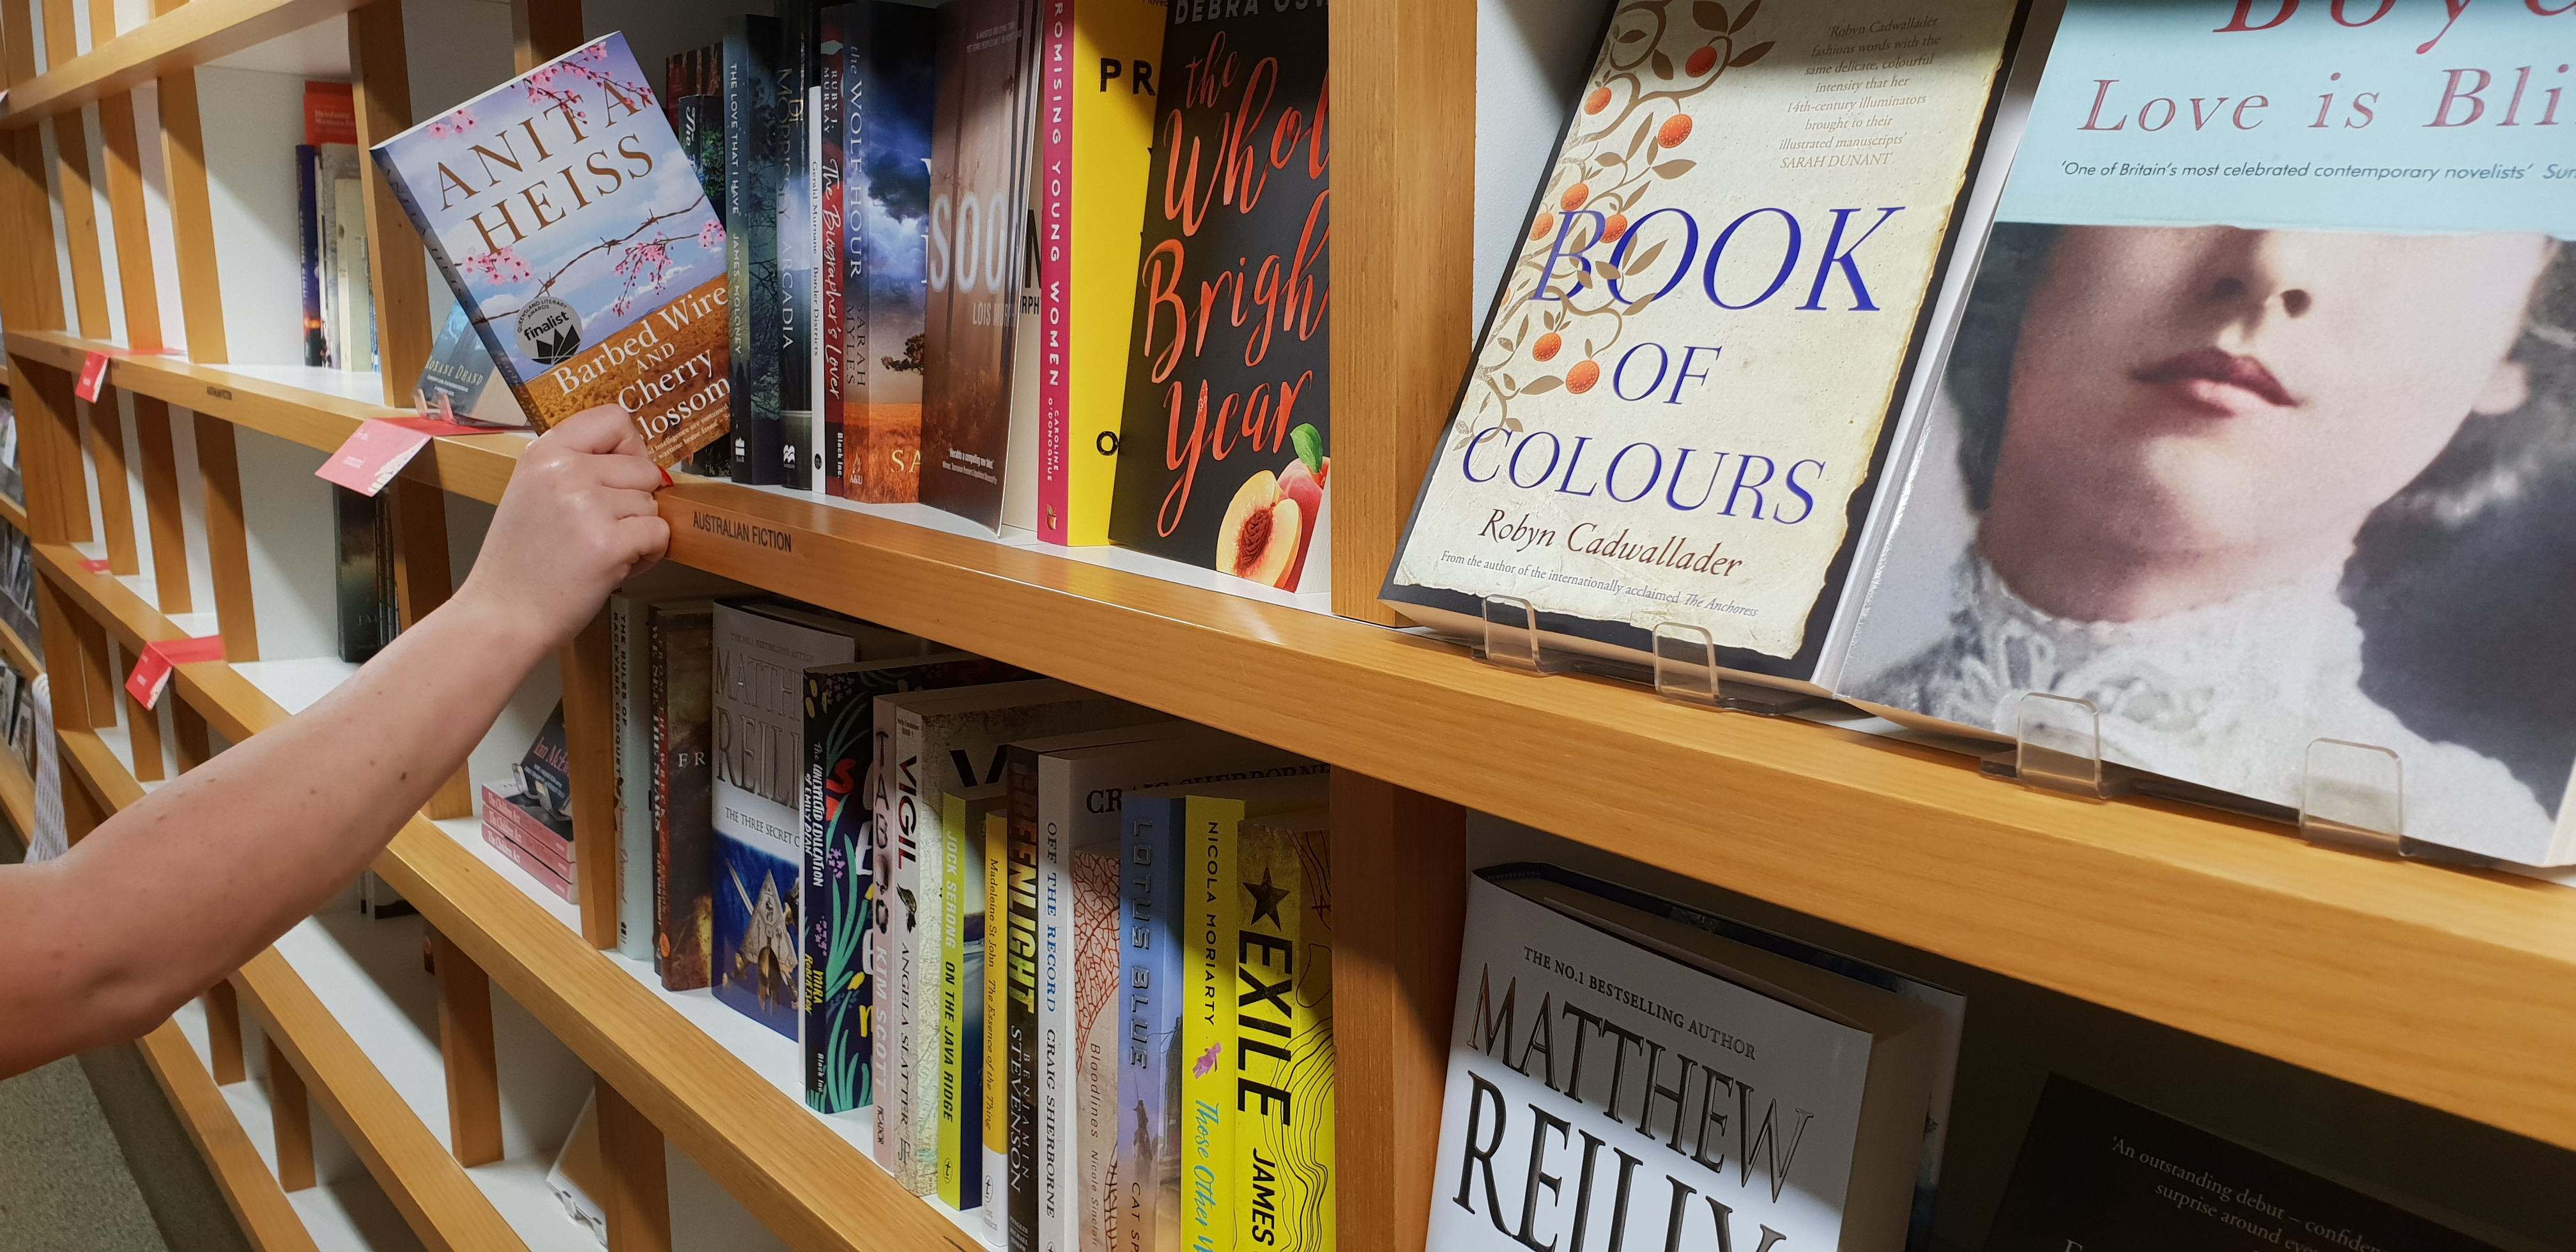 Library Shop fiction bookshelf